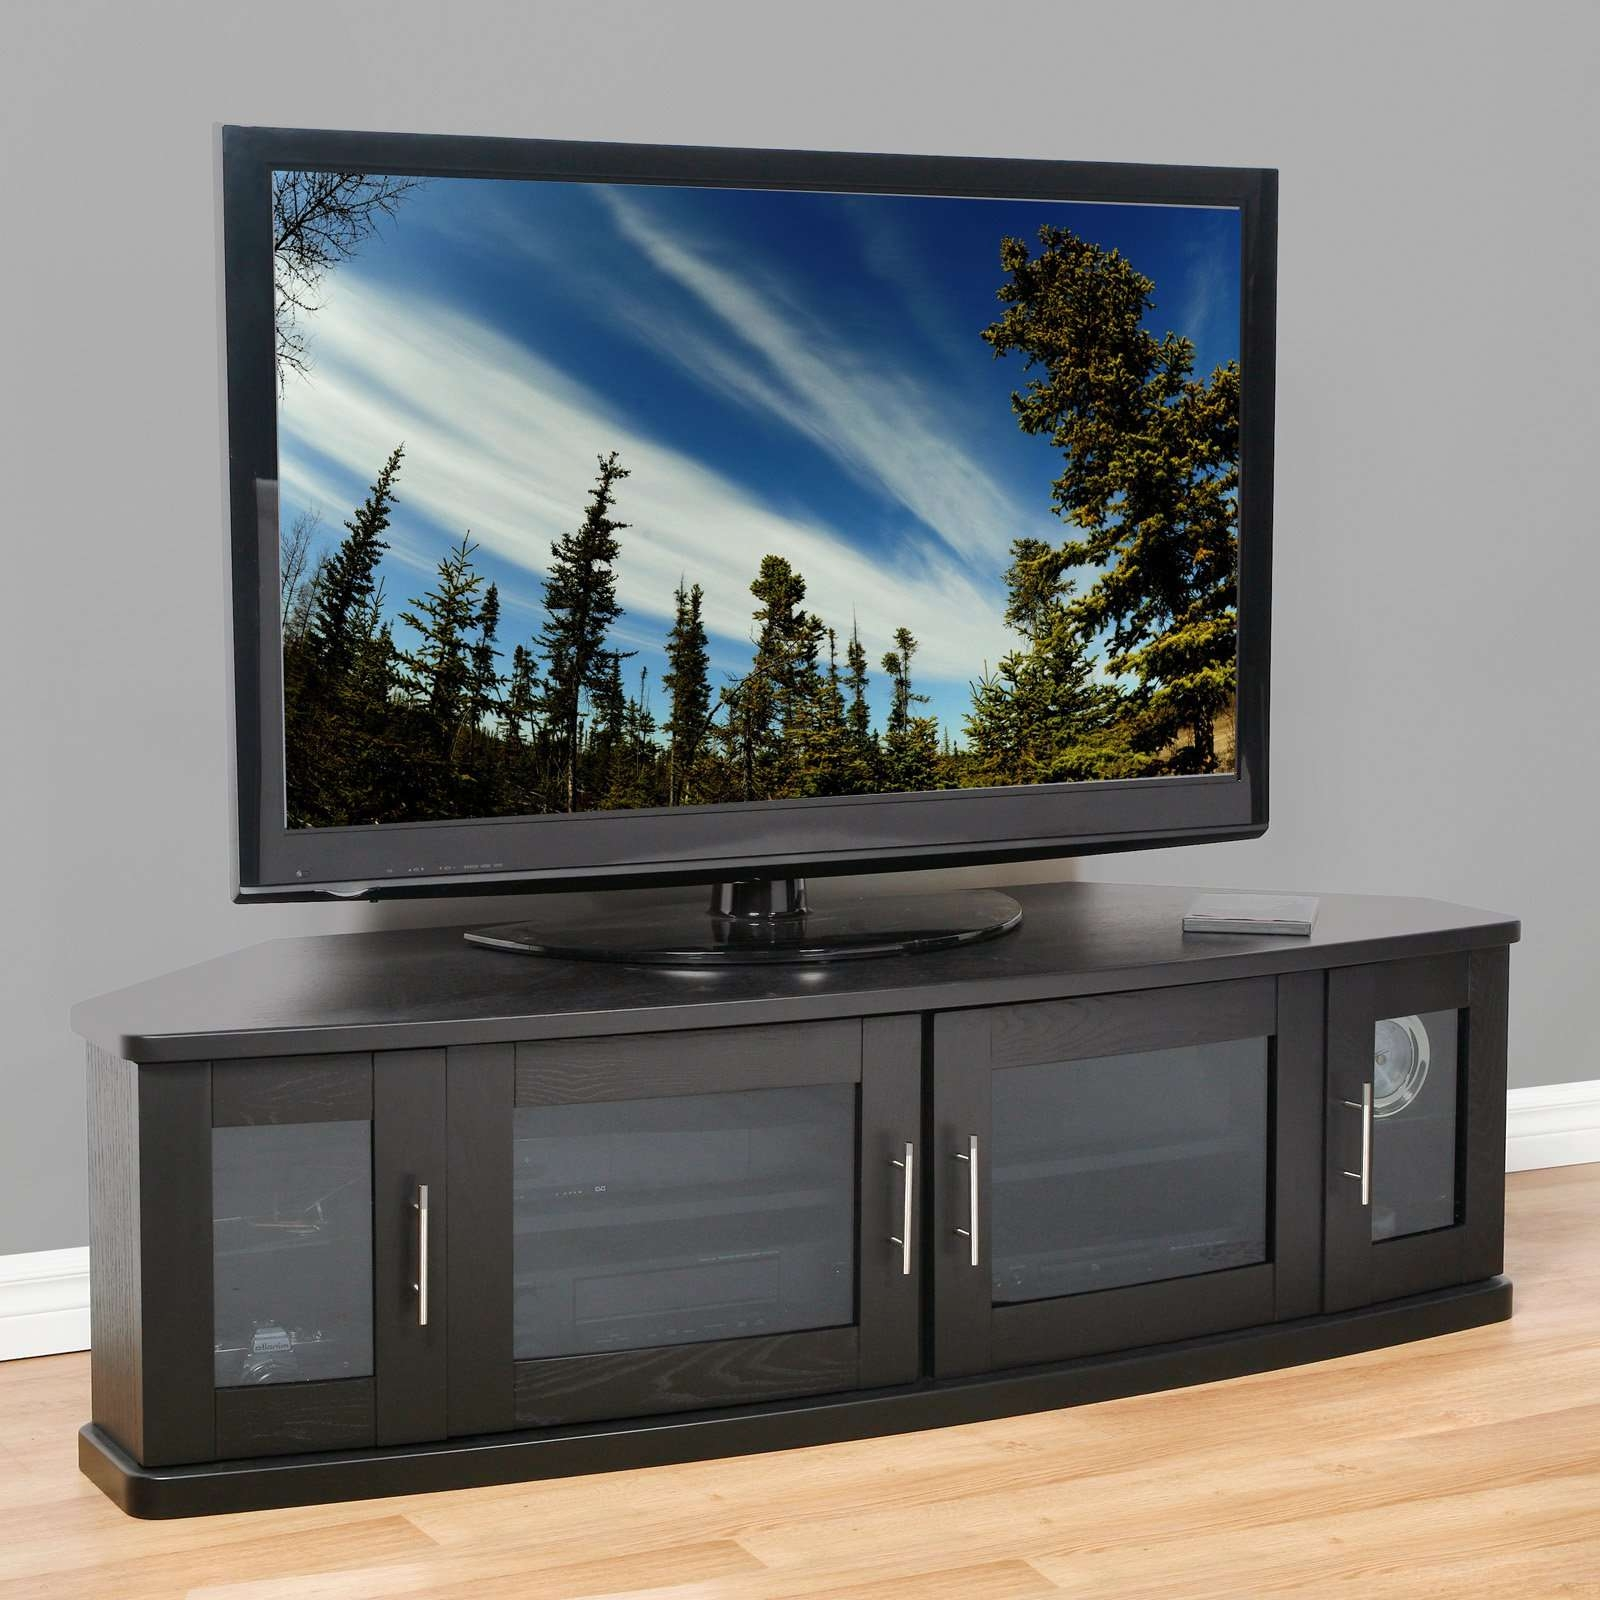 Modern Black Wooden Tv Stand With Frosted Glass Doors Of Dazzling With Wooden Tv Cabinets With Glass Doors (View 16 of 20)